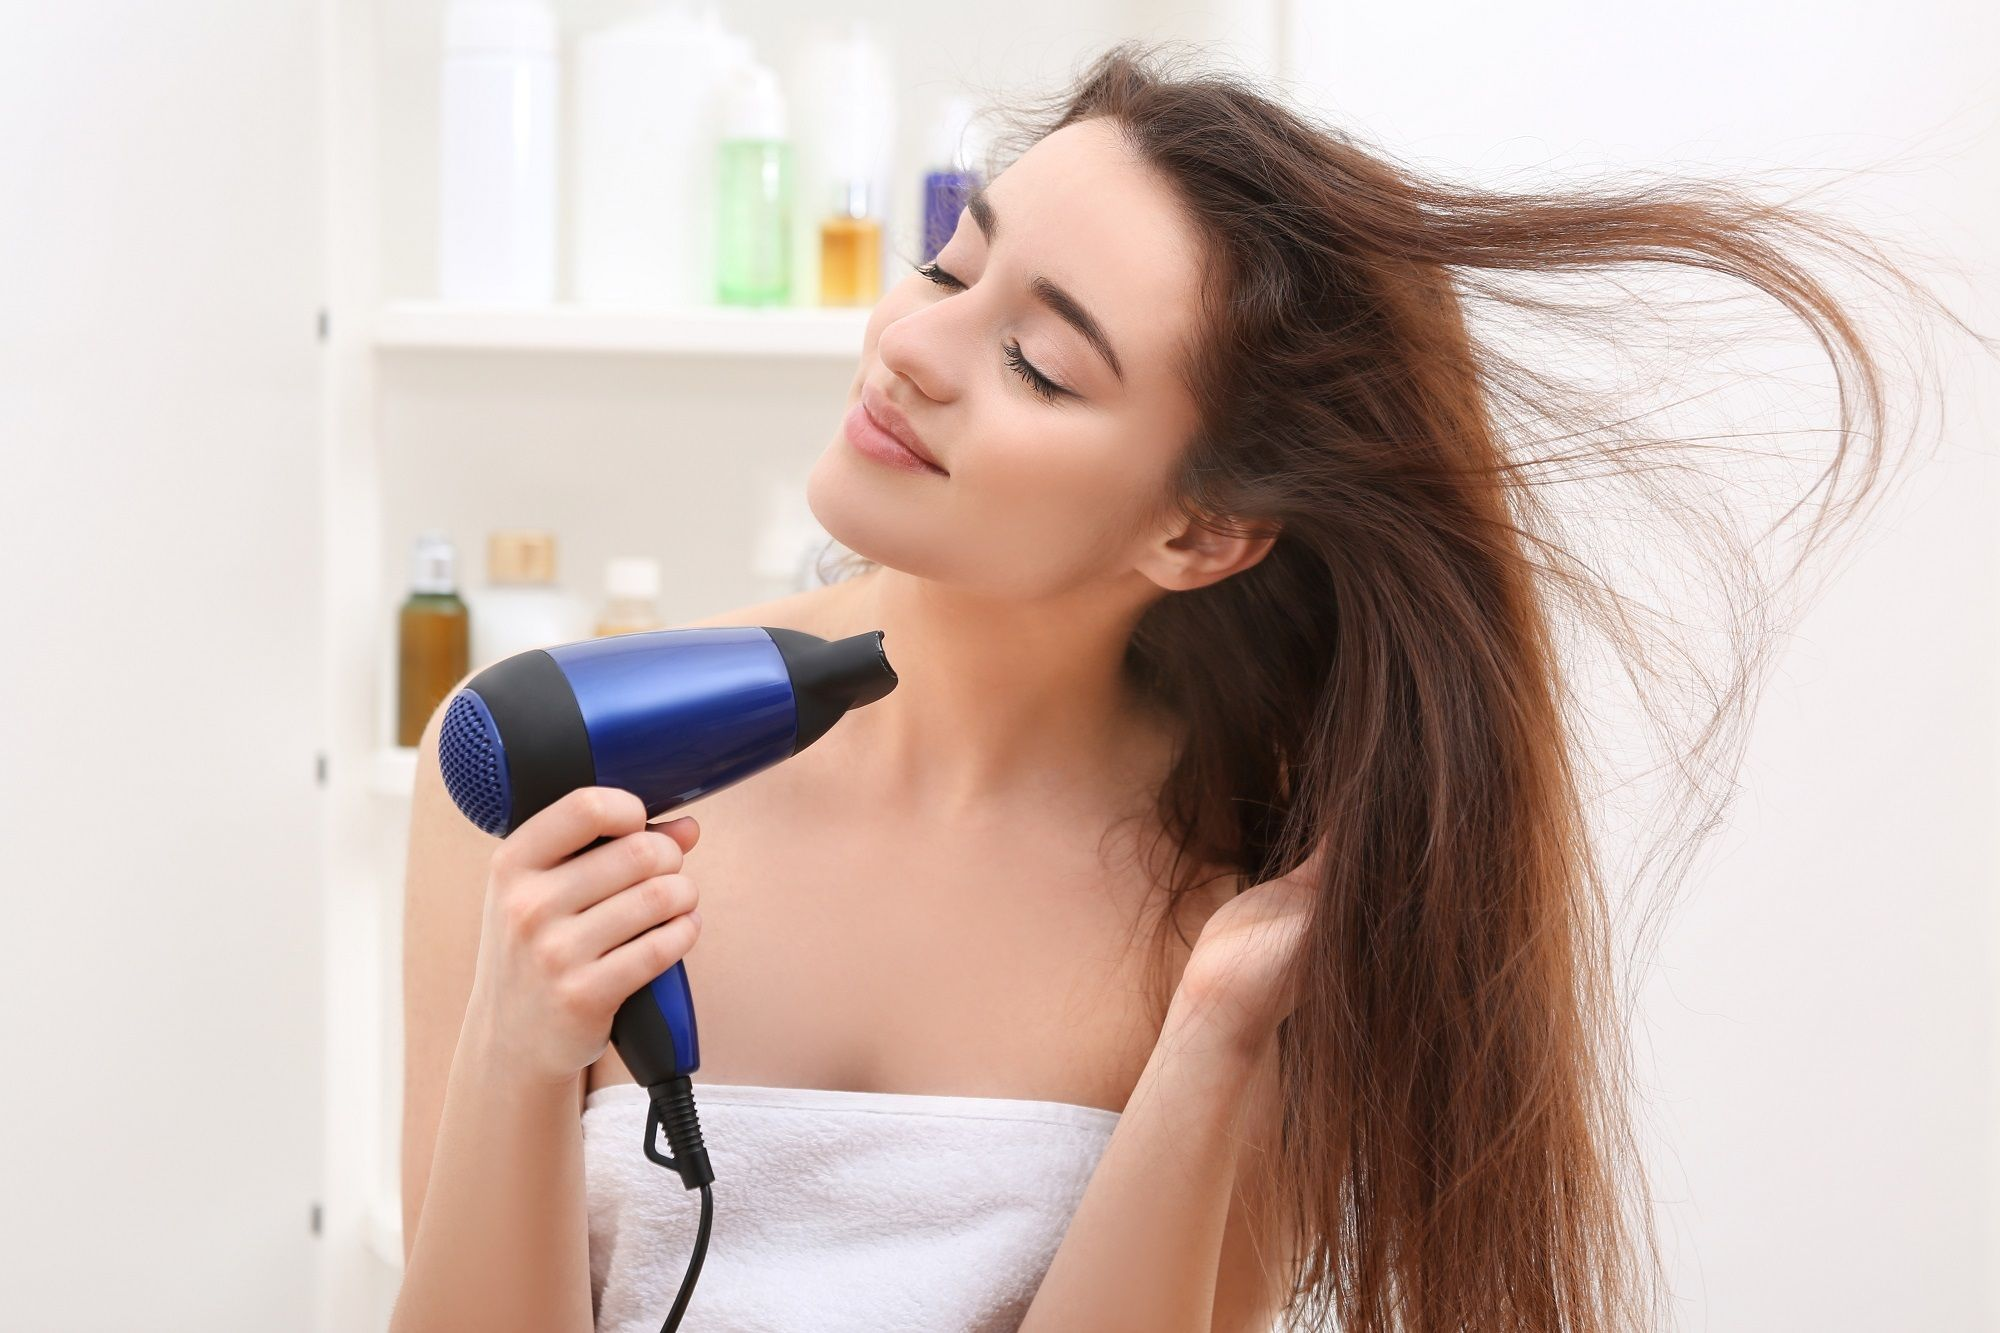 Frizzy hair remedies: Closeup shot of a woman with long brown hair blow drying hair in a bathroom